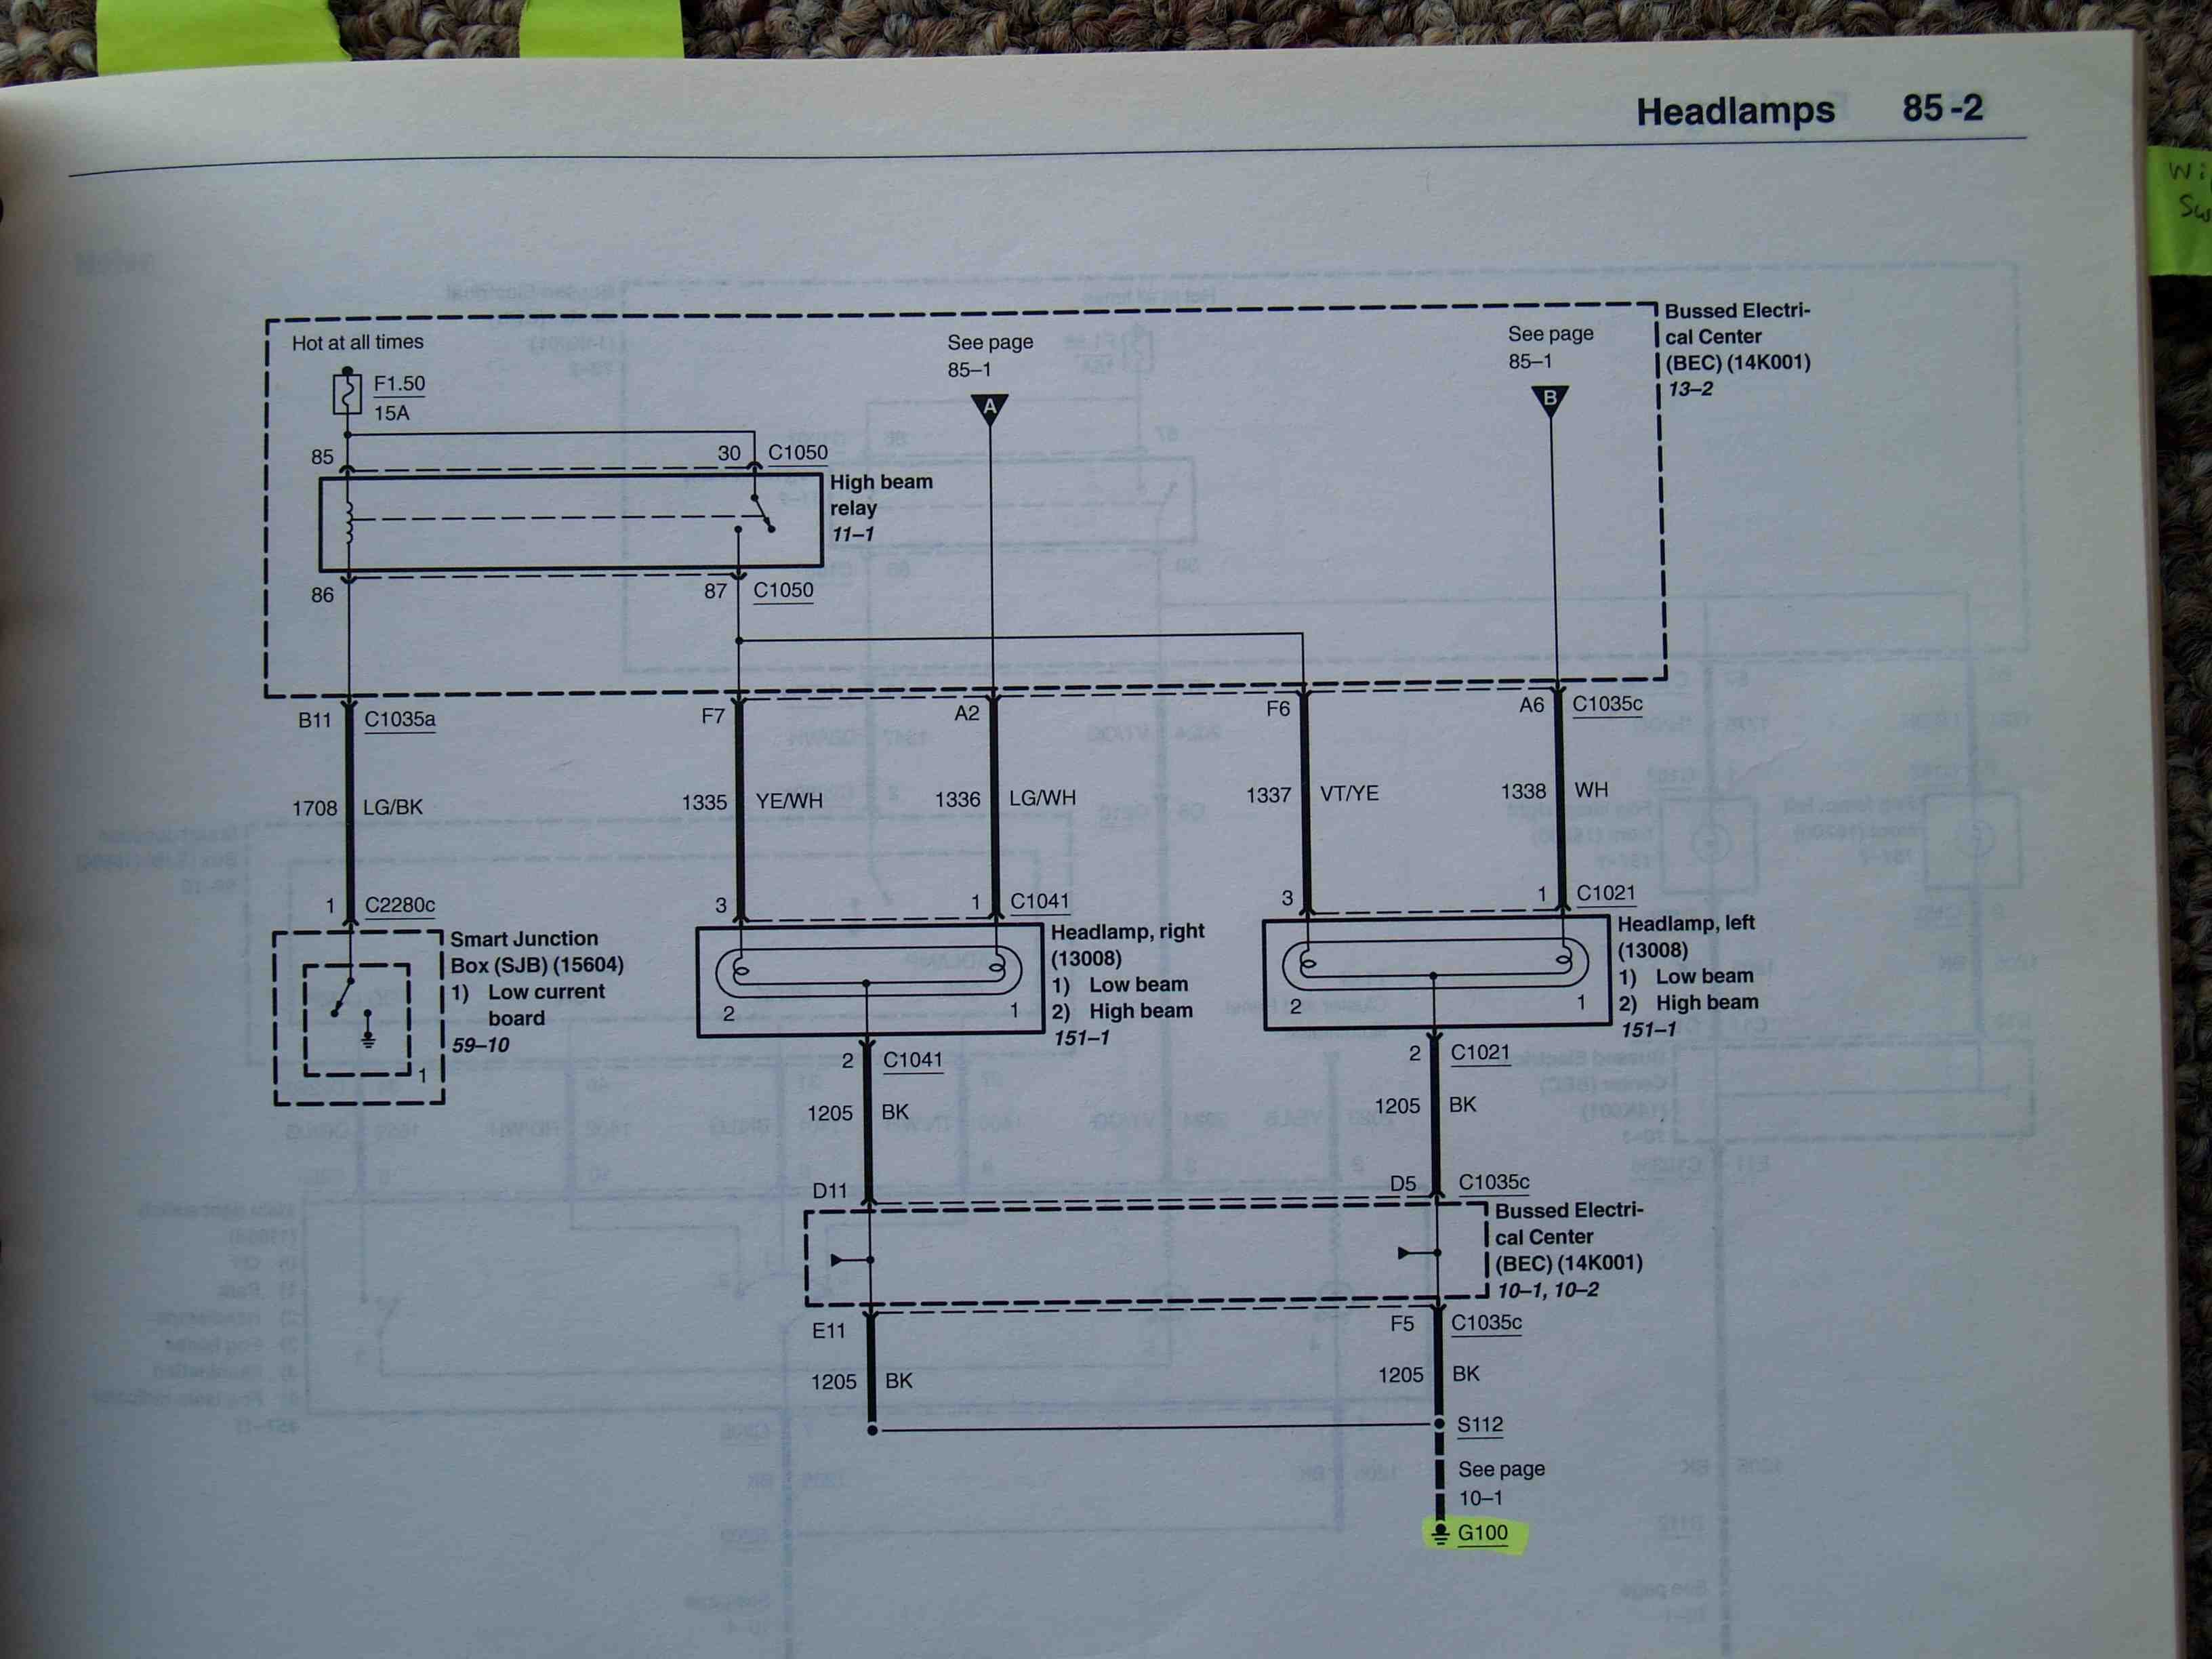 99331d1274386710 2008 gt headlight wiring diagram p5206404 2 s197 wiring diagram s175 wiring diagram \u2022 wiring diagrams j aprilaire wiring diagrams for 8466 thermostat at creativeand.co